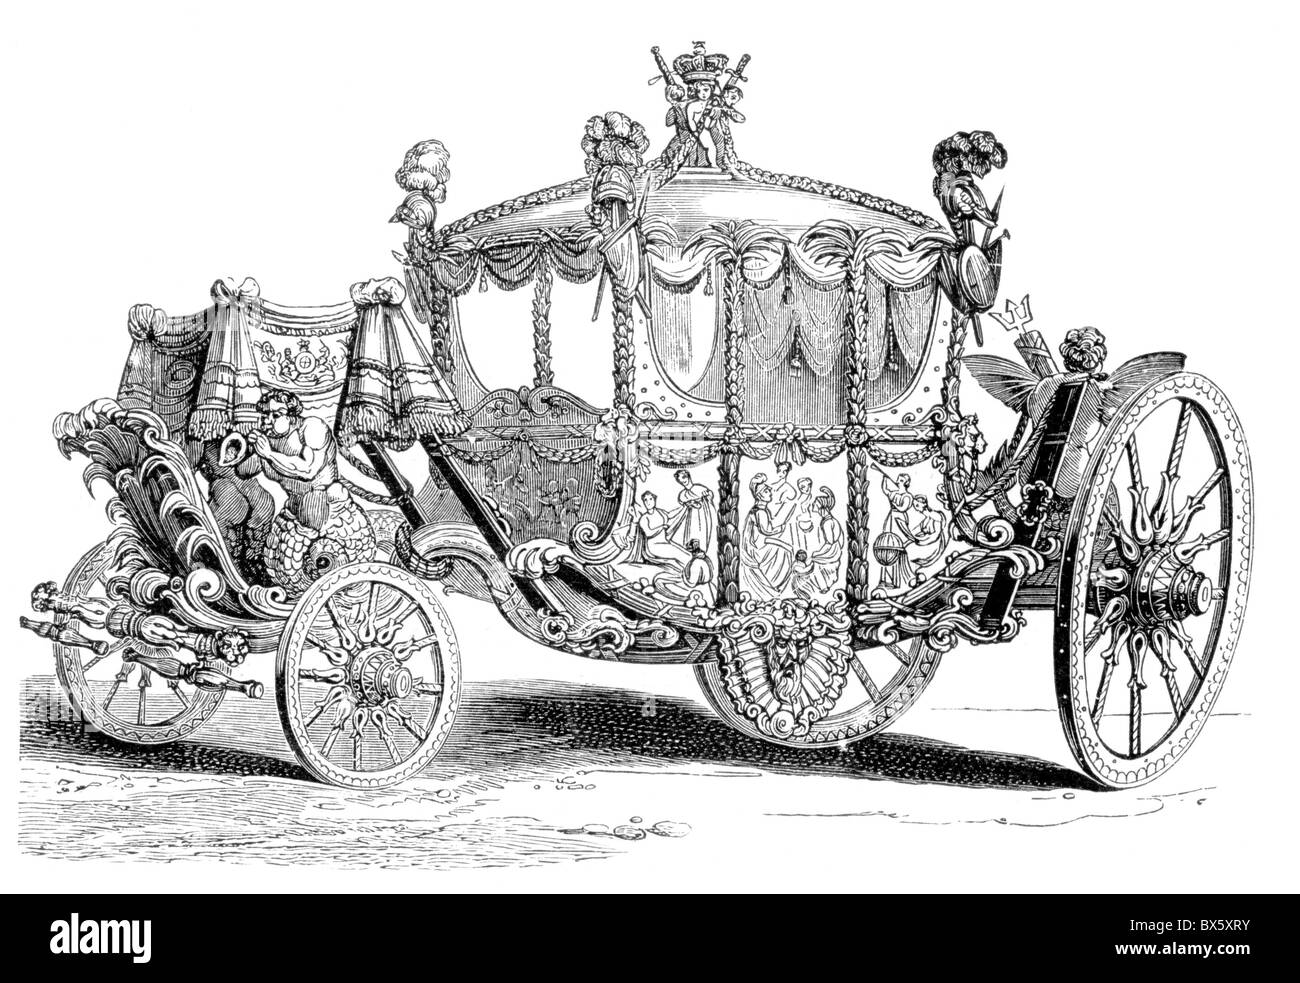 The Royal State Coach Of King George III England Black And White Illustration